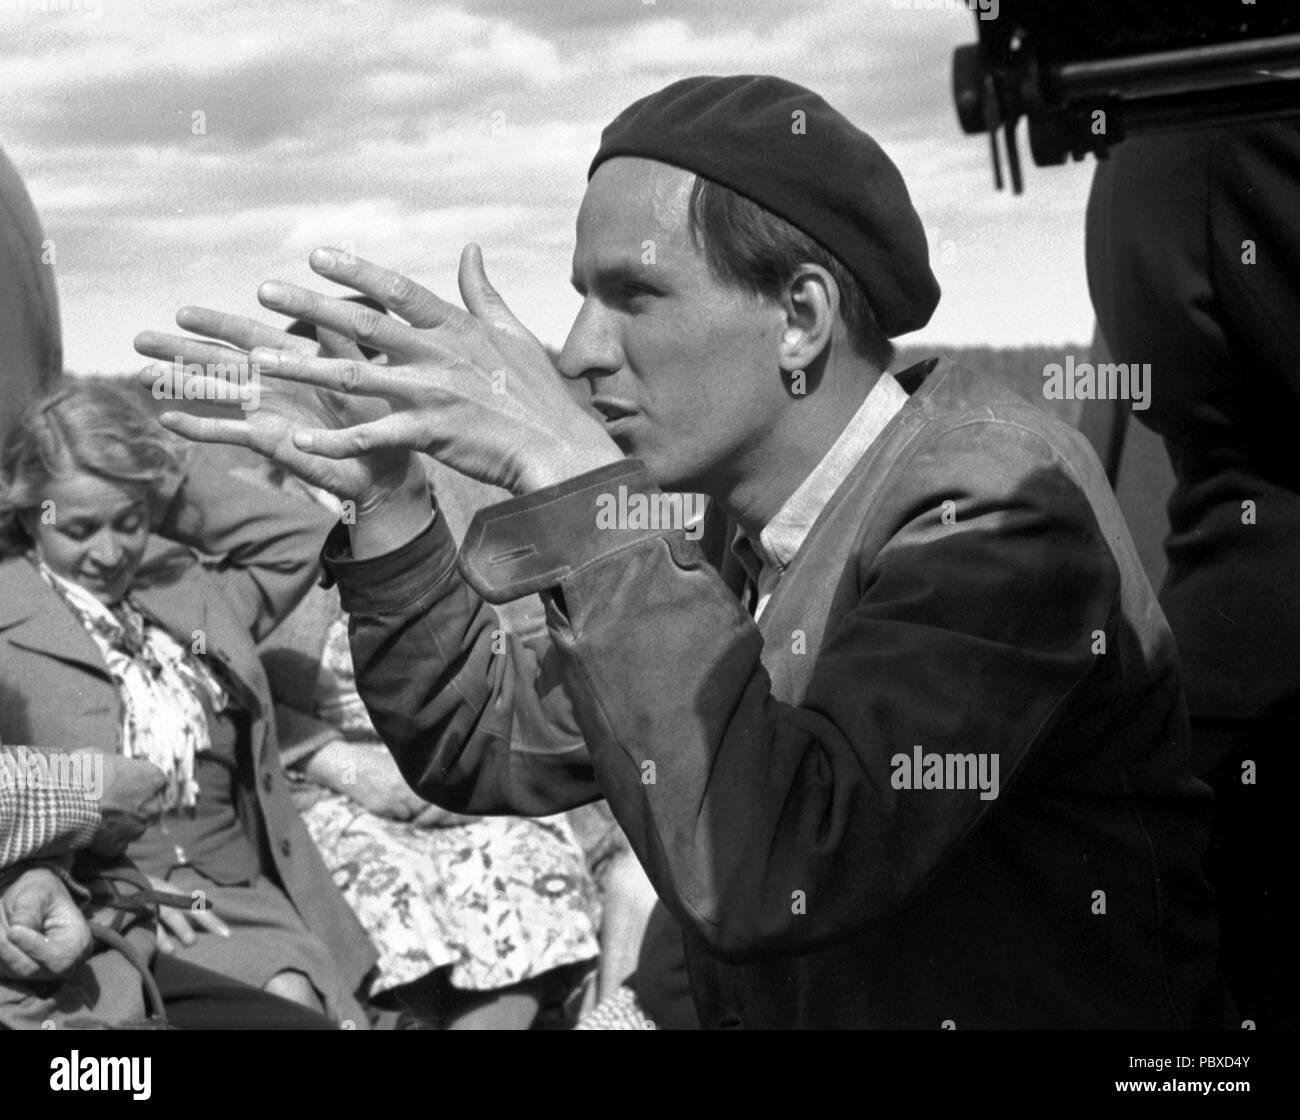 Ingmar Bergman. 1918-2007.  Swedish film director. Pictured here 1950 on the film set of the movie Summer Interlude. The film had premiere 1951. Photographer: Kristoffersson/az33/9 - Stock Image